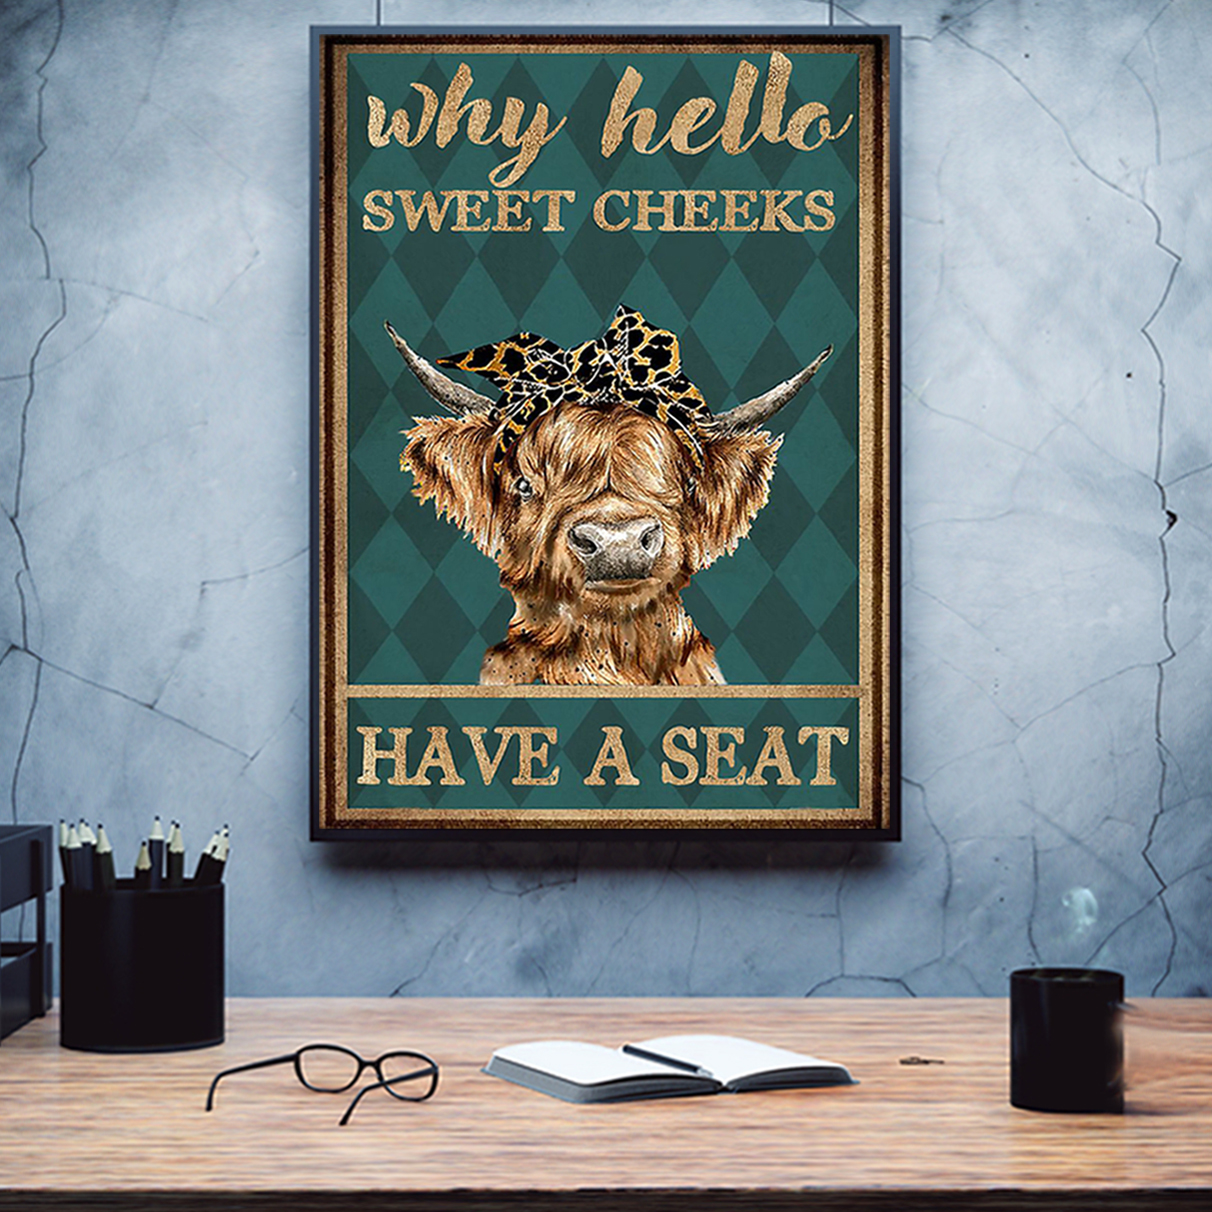 Cow highland cattle why hello sweet cheeks have a seat poster A3